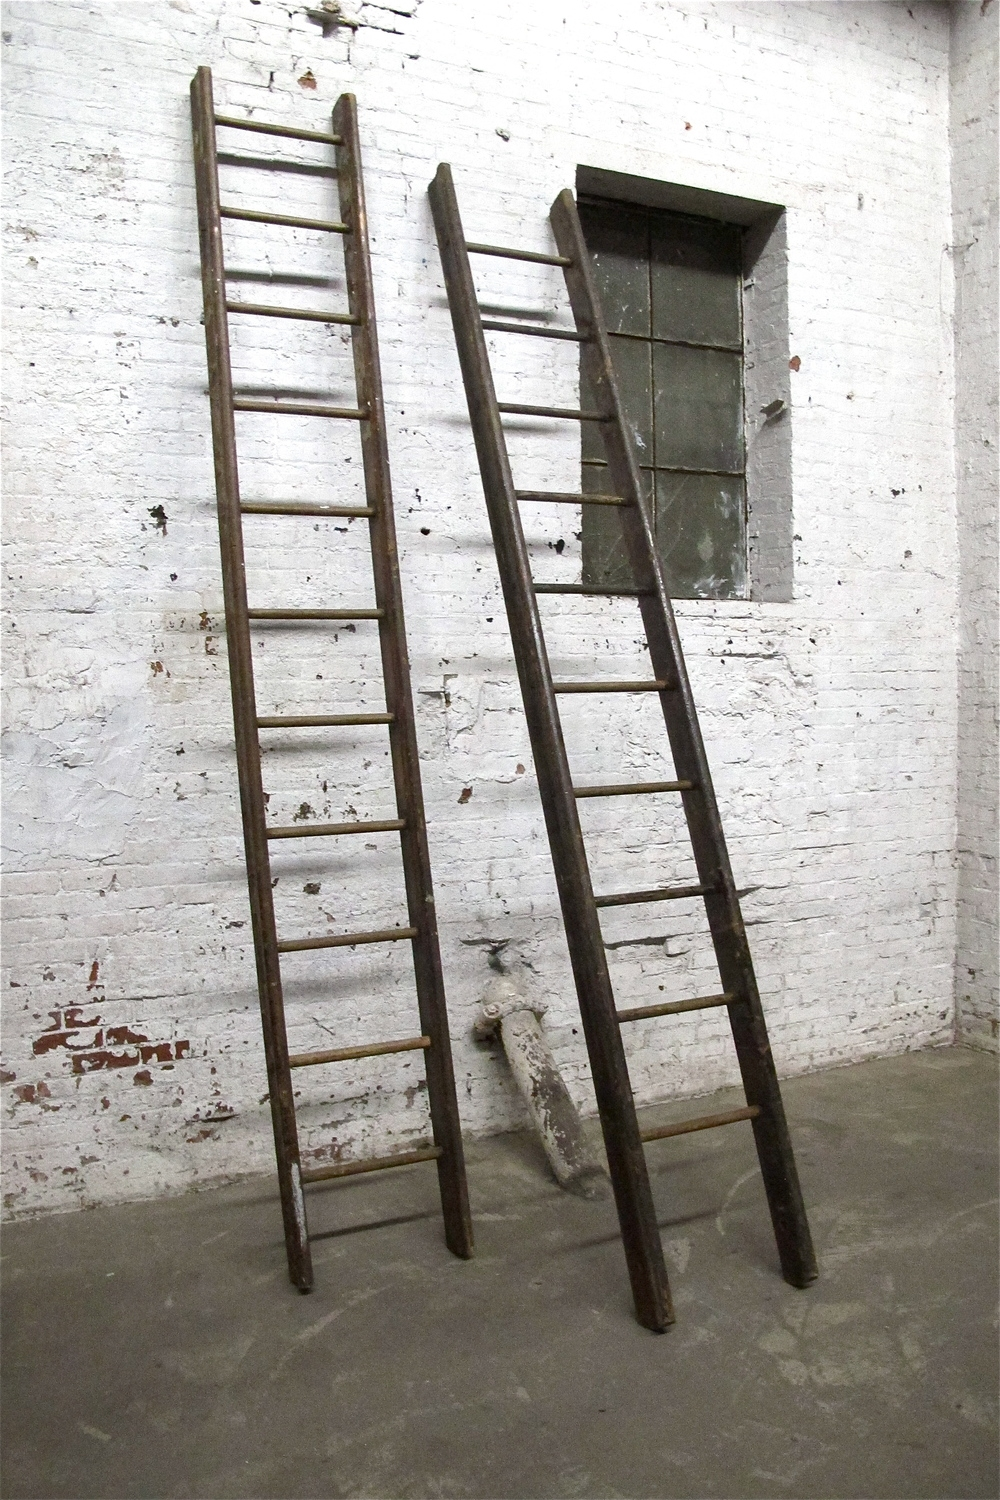 Popular Photo of Wooden Library Ladders